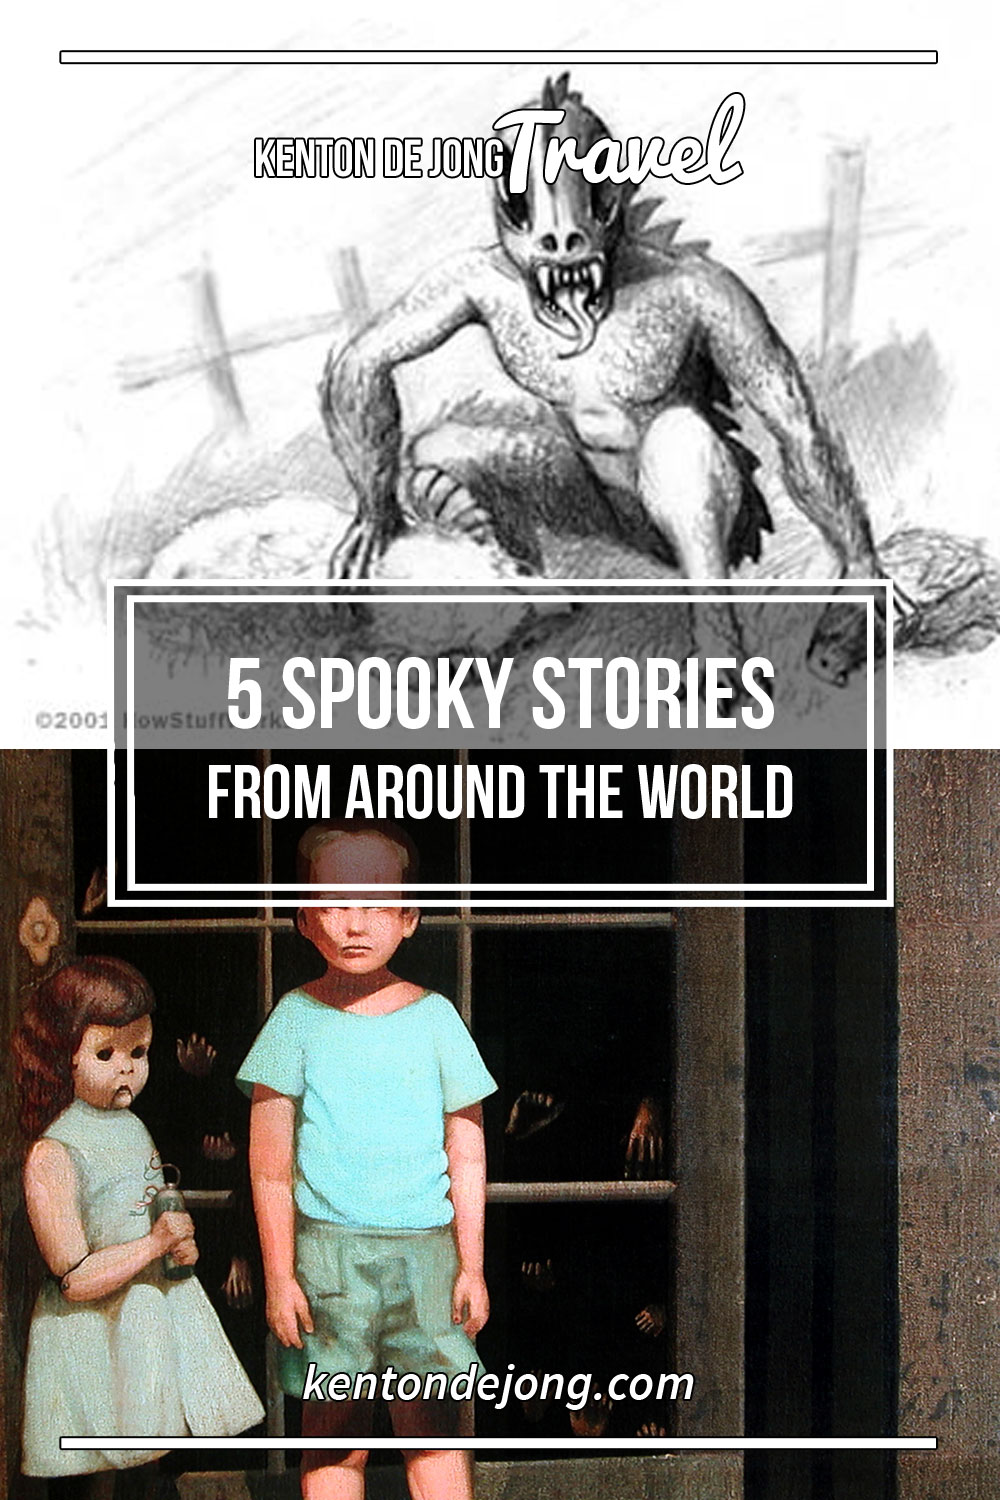 5 Spooky Stories from Around the World